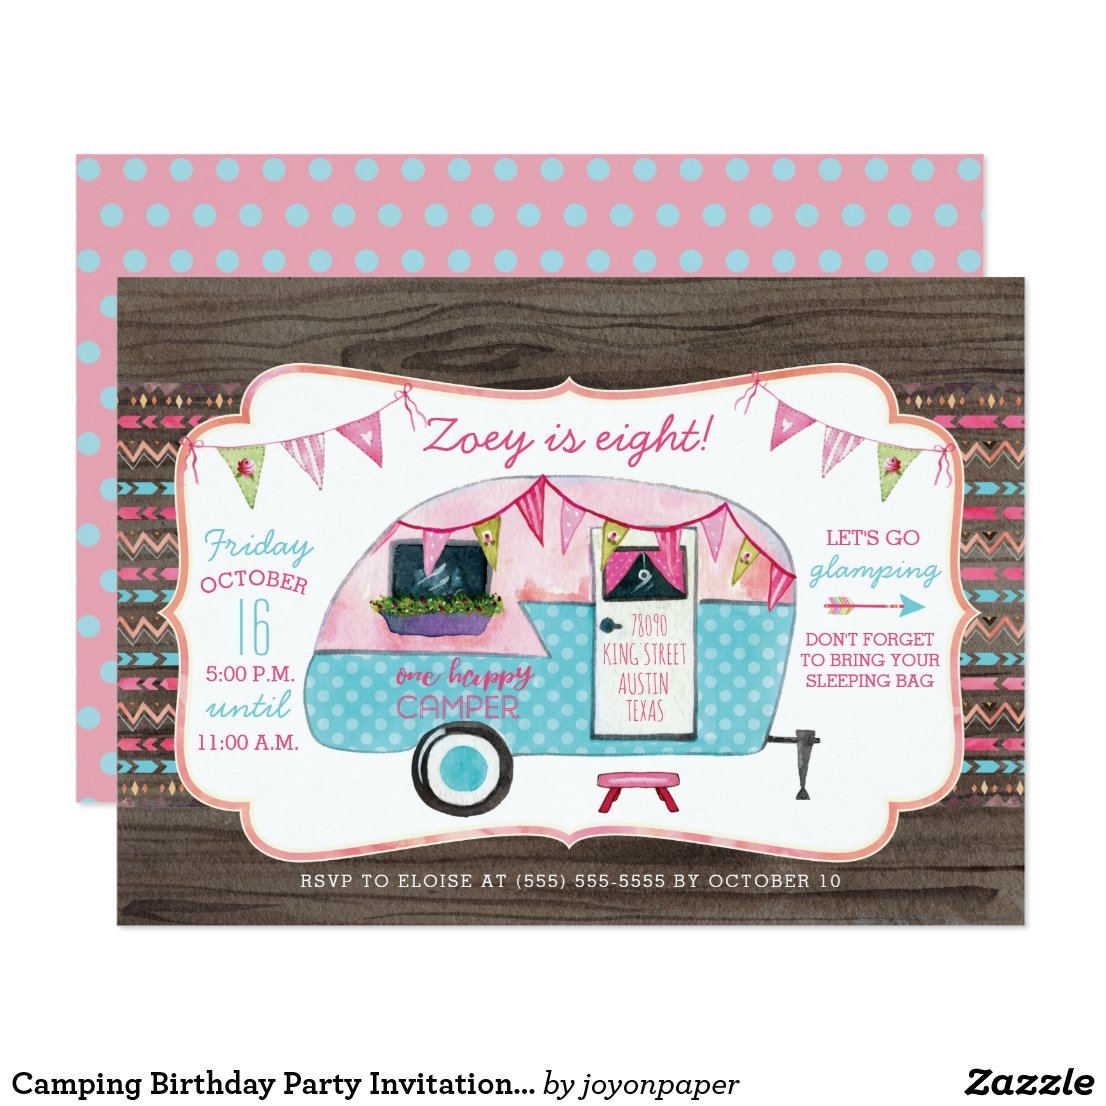 Camping Birthday Party Invitation - Girl Glamping